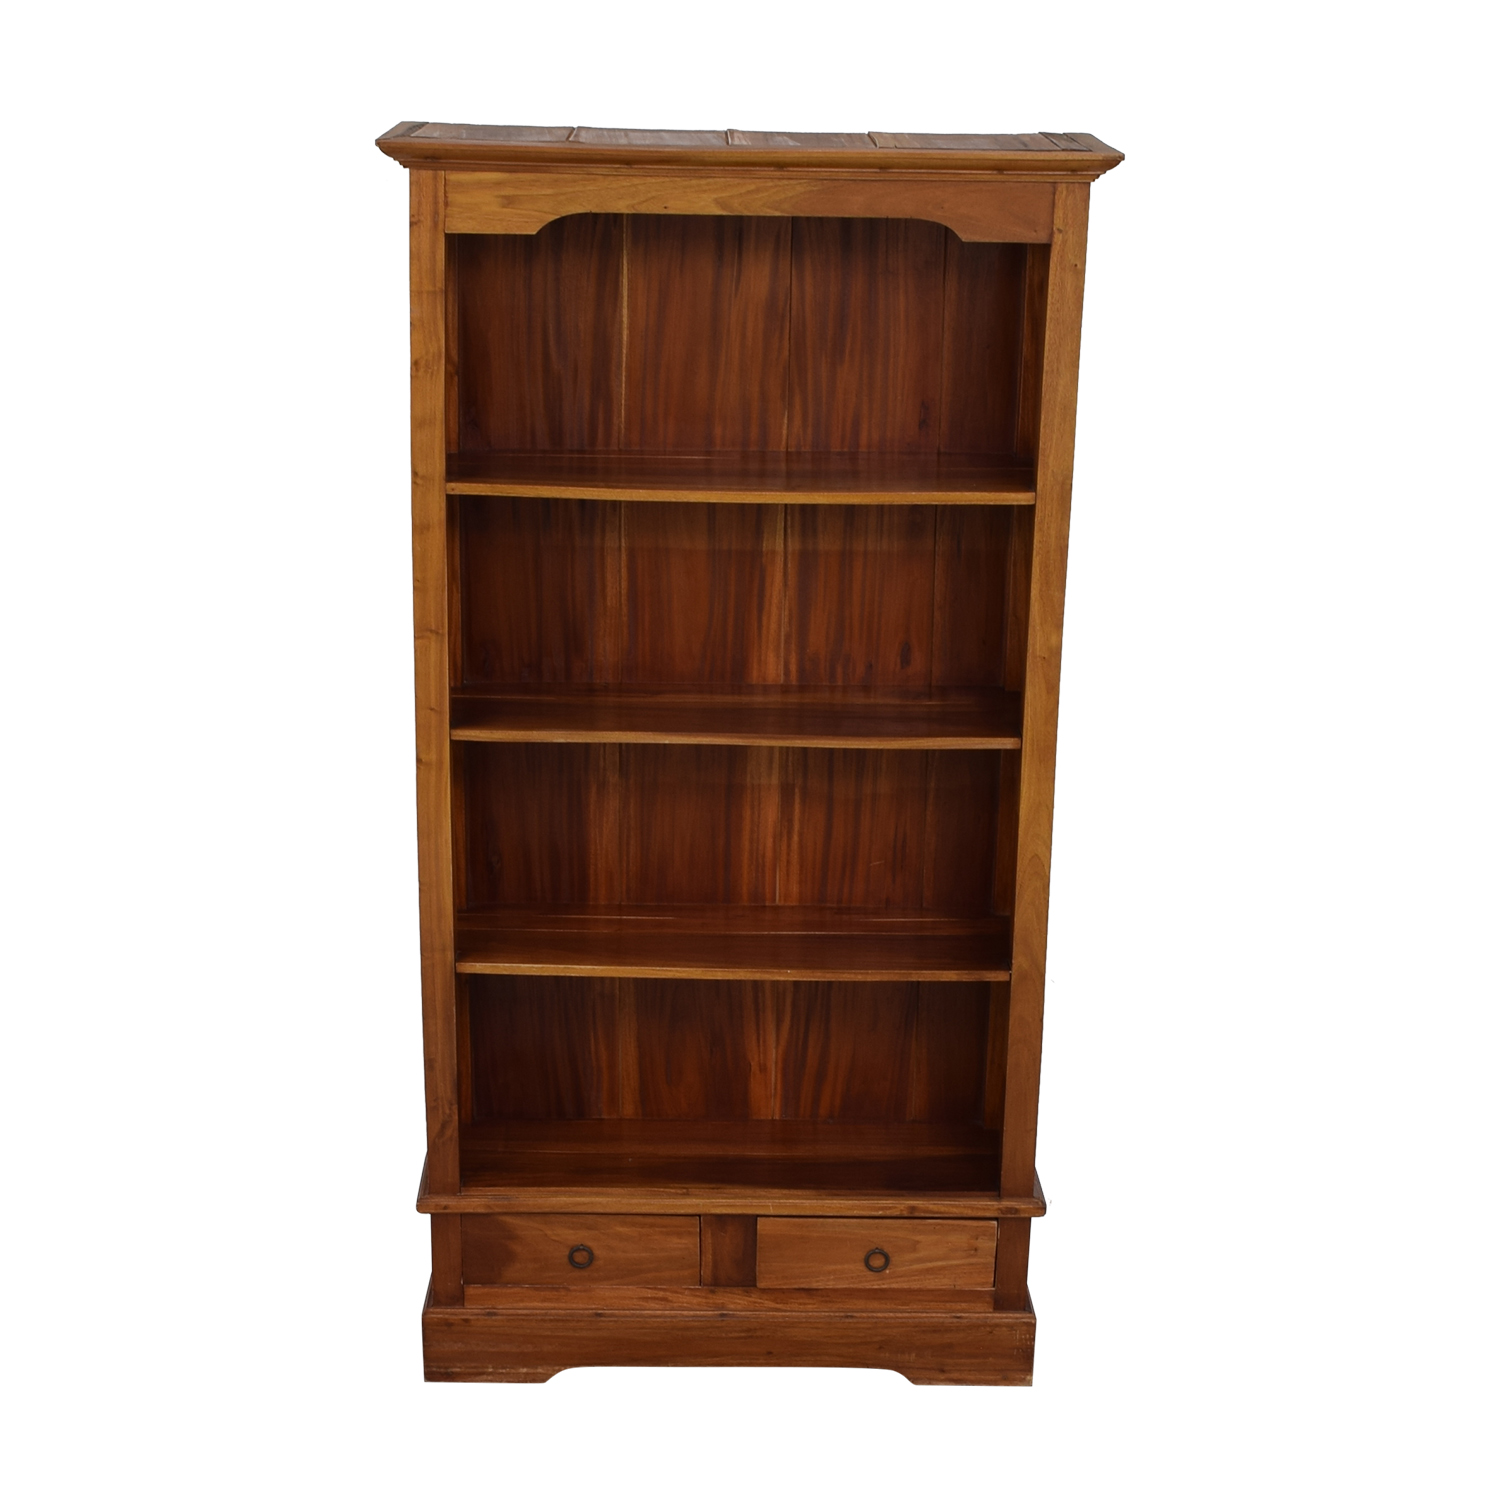 Tall Wood Bookcase with Two Drawers nj